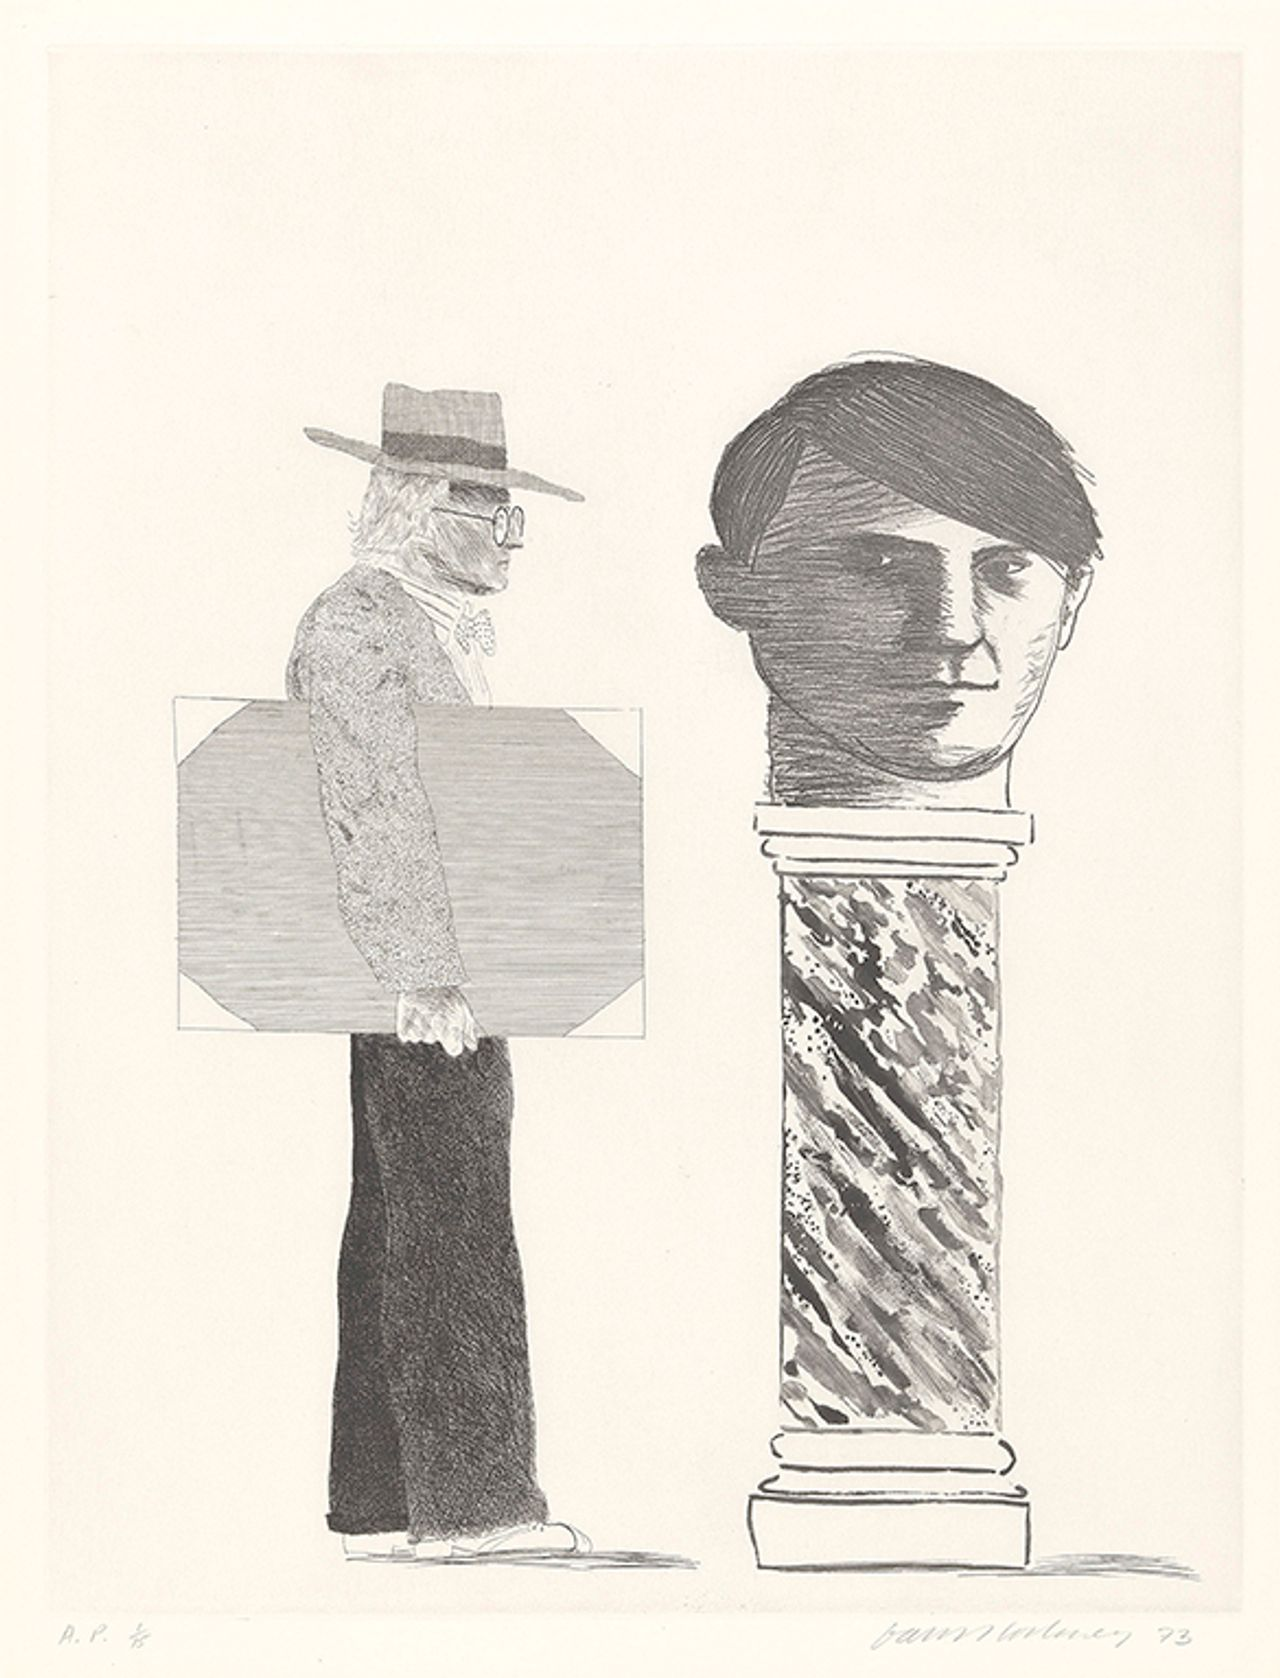 David Hockney's The Student: Homage to Picasso (1973) © David Hockney Collection The David Hockney Foundation